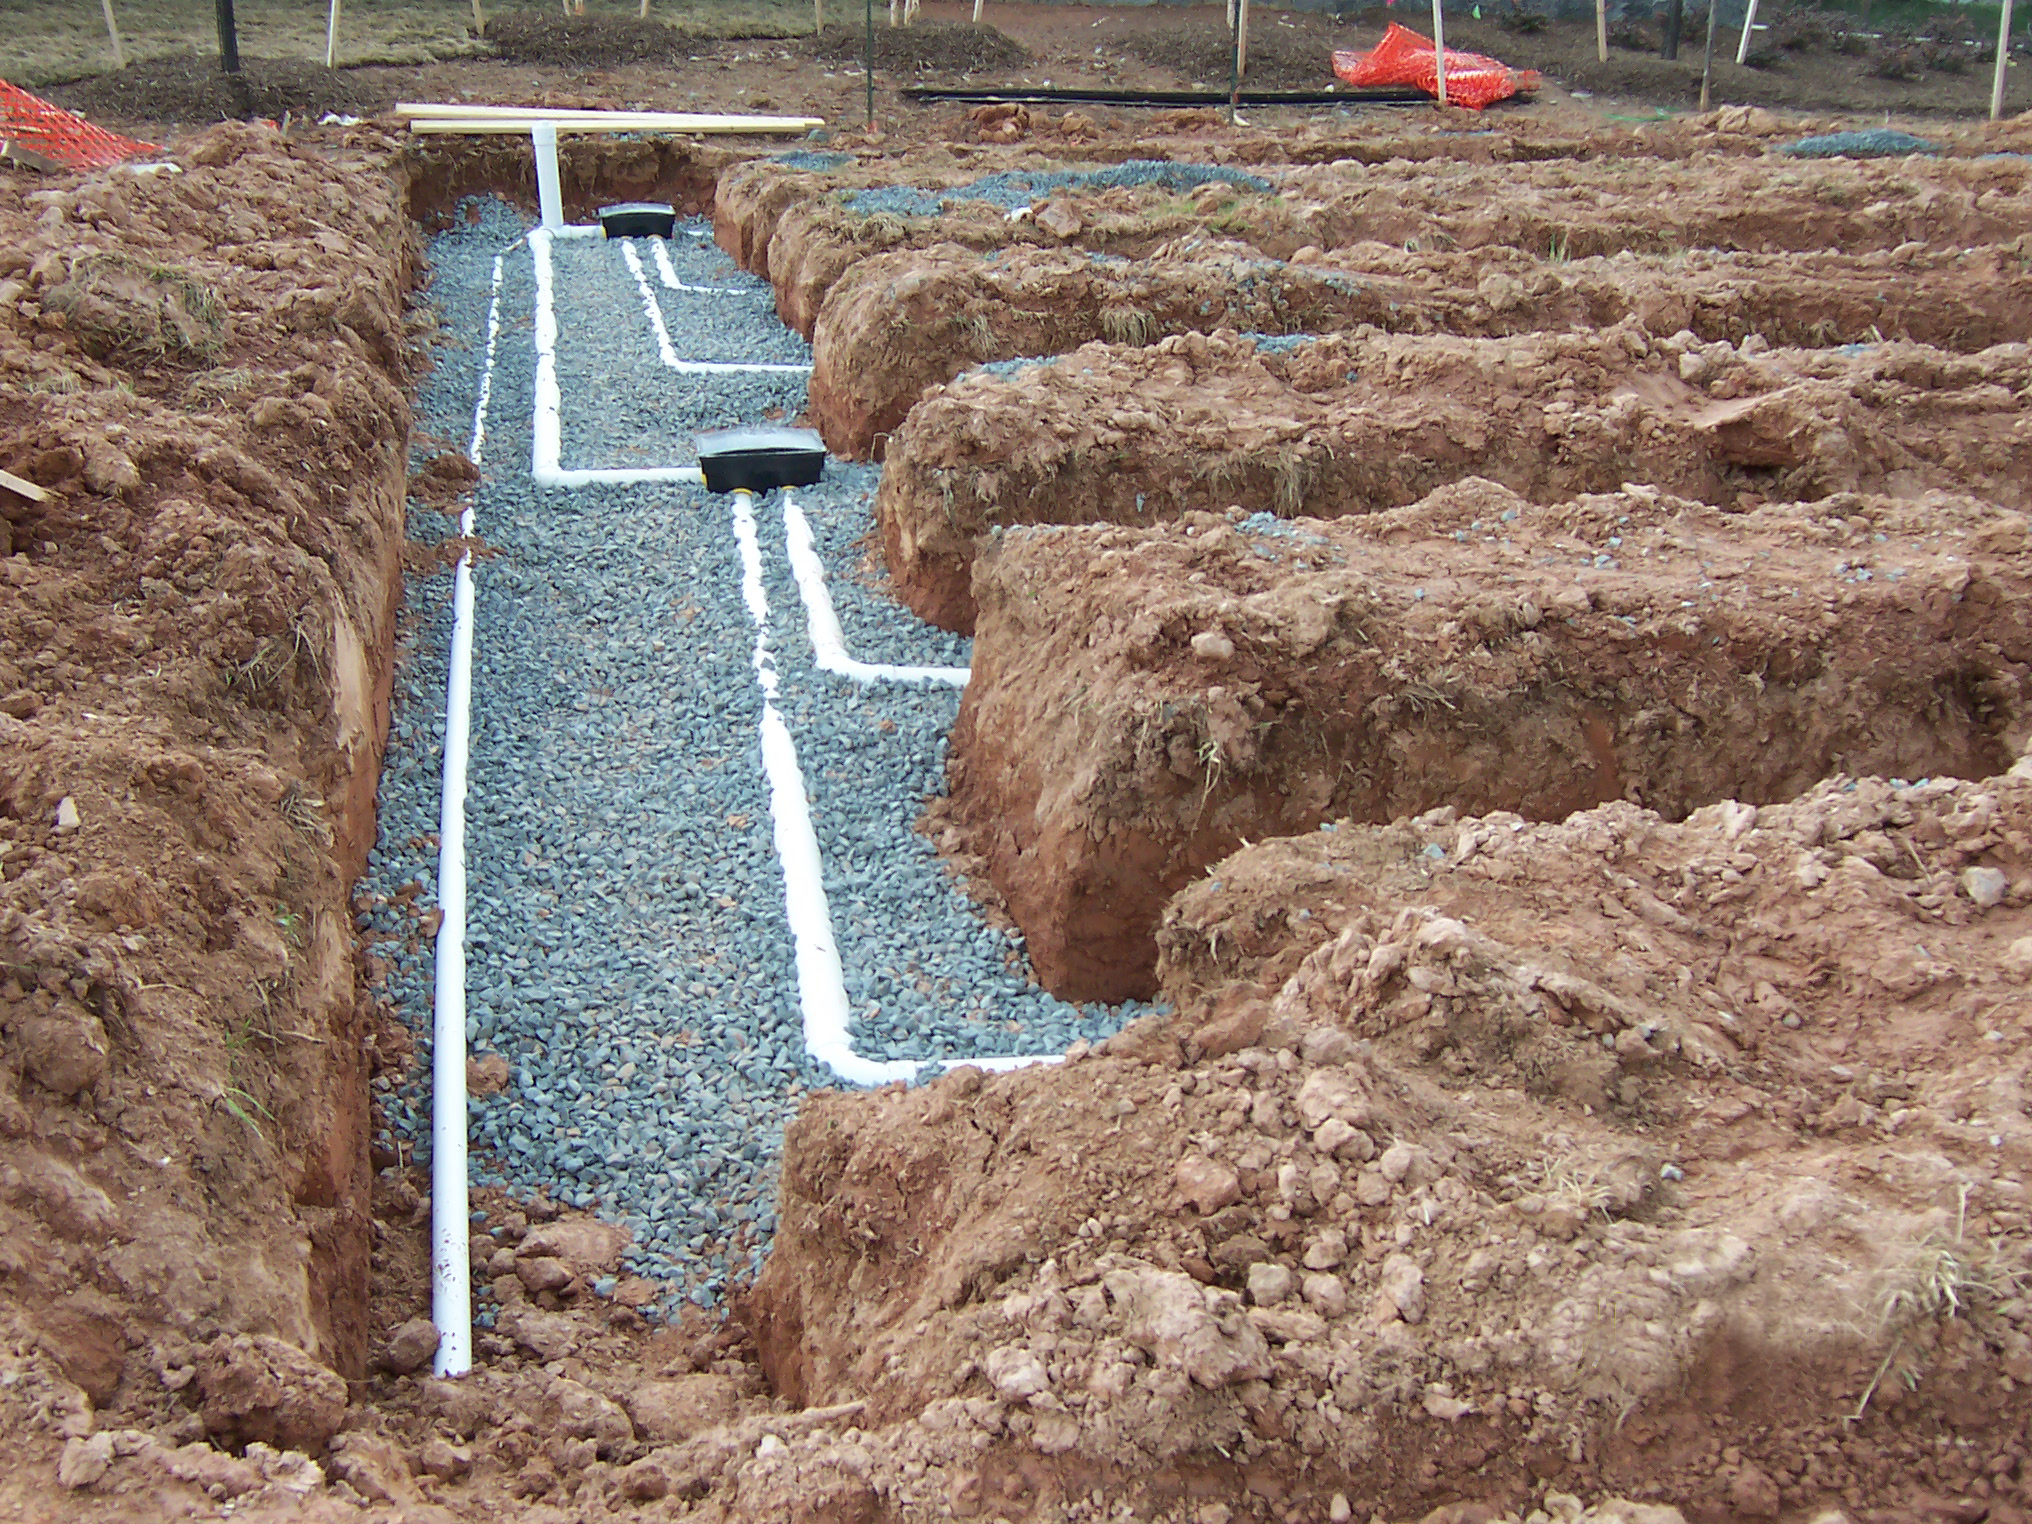 Onsite sewage system under construction